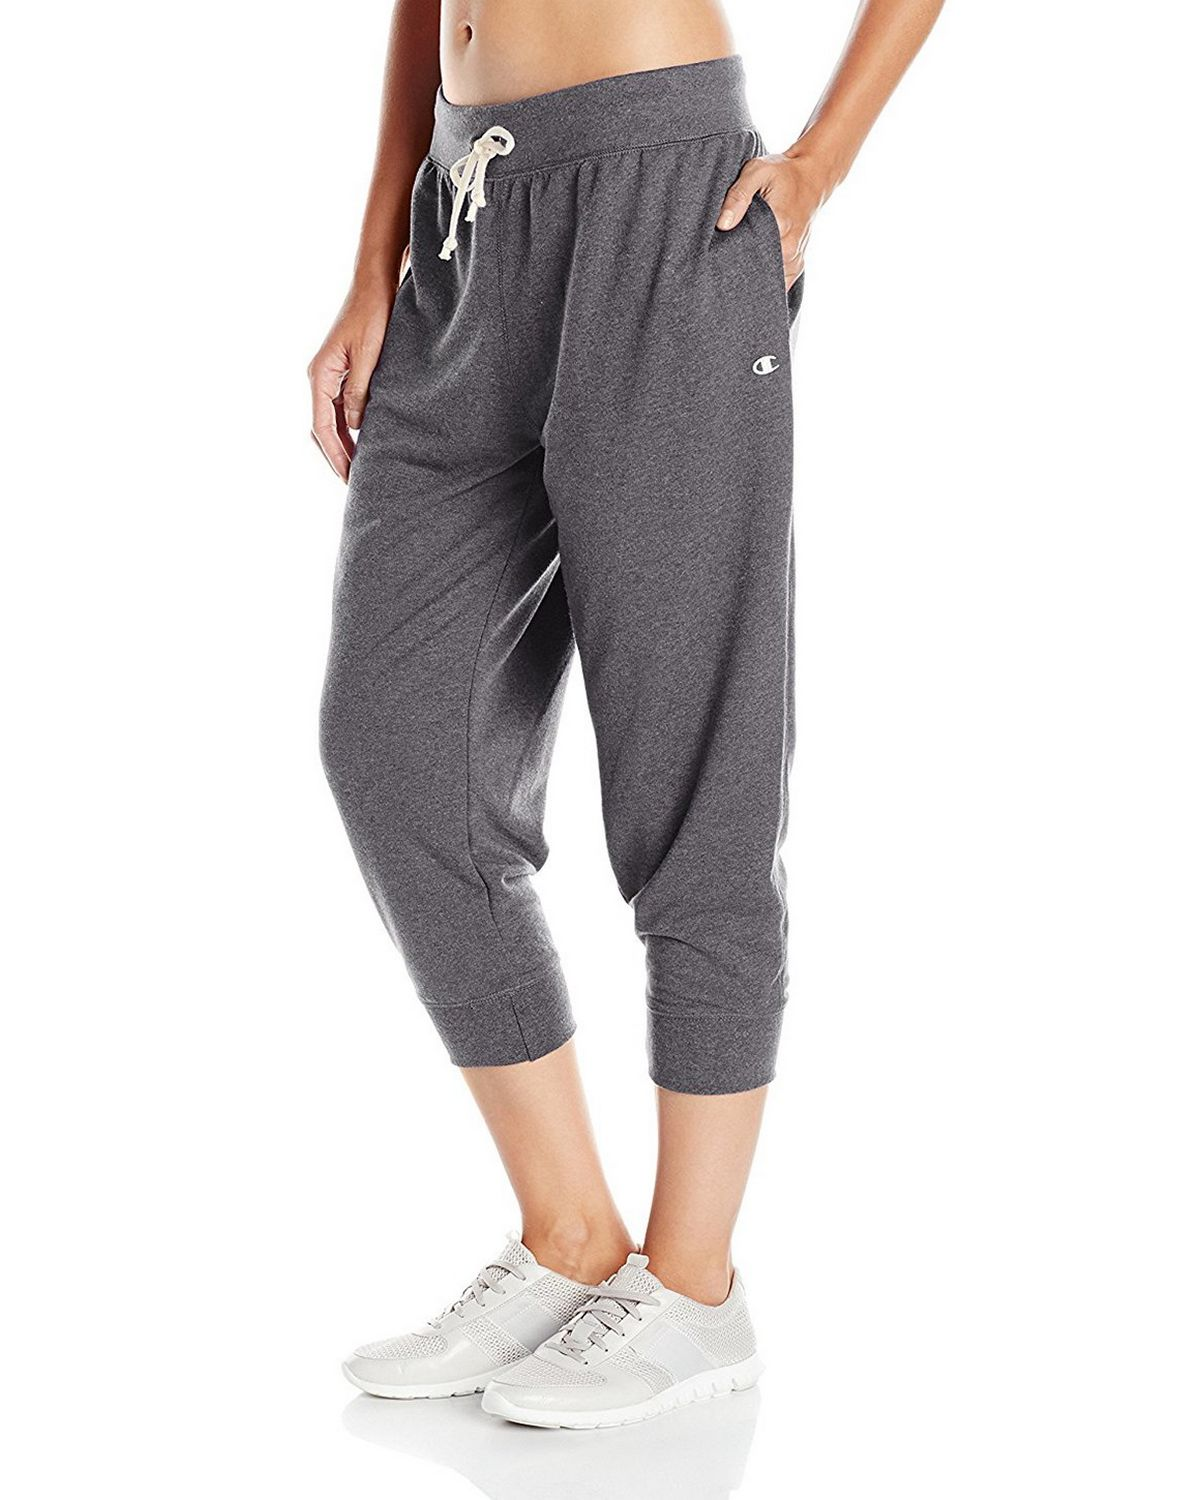 Champion M0945 Womens French Jogger Capris - Granite Heather - L M0945